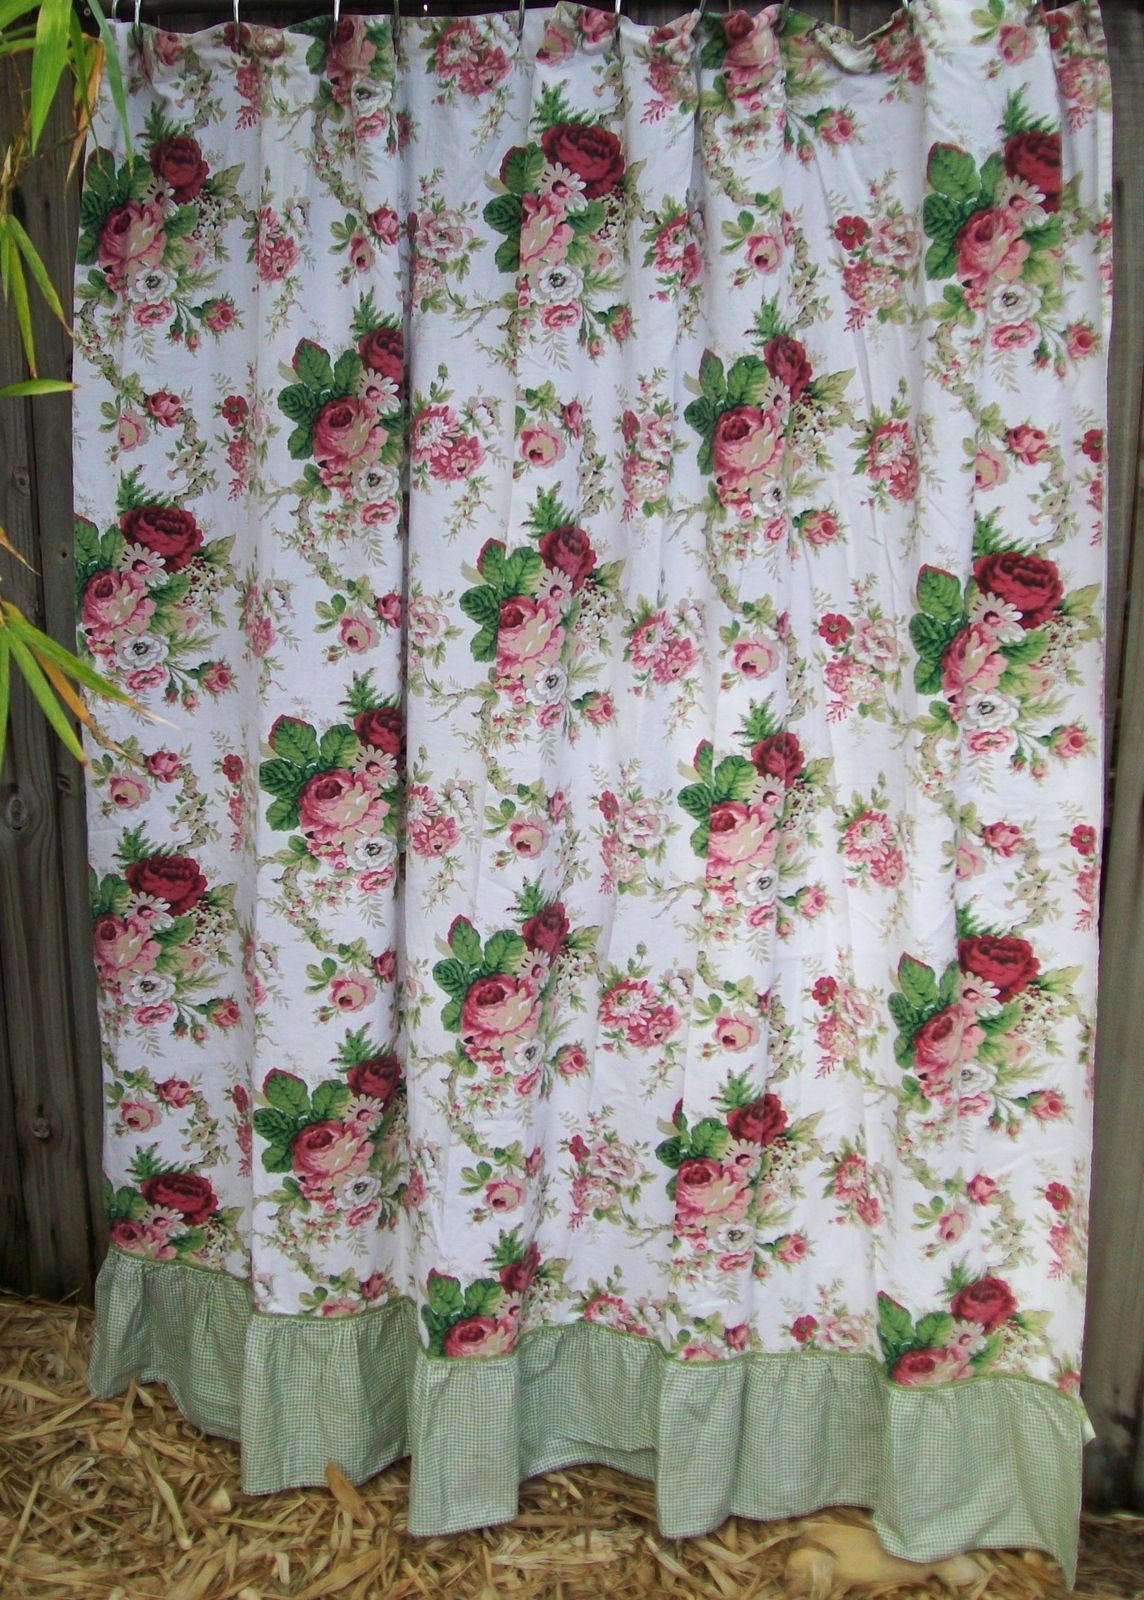 Waverly Spring Romance Floral Fabric Shower Curtain White Pink